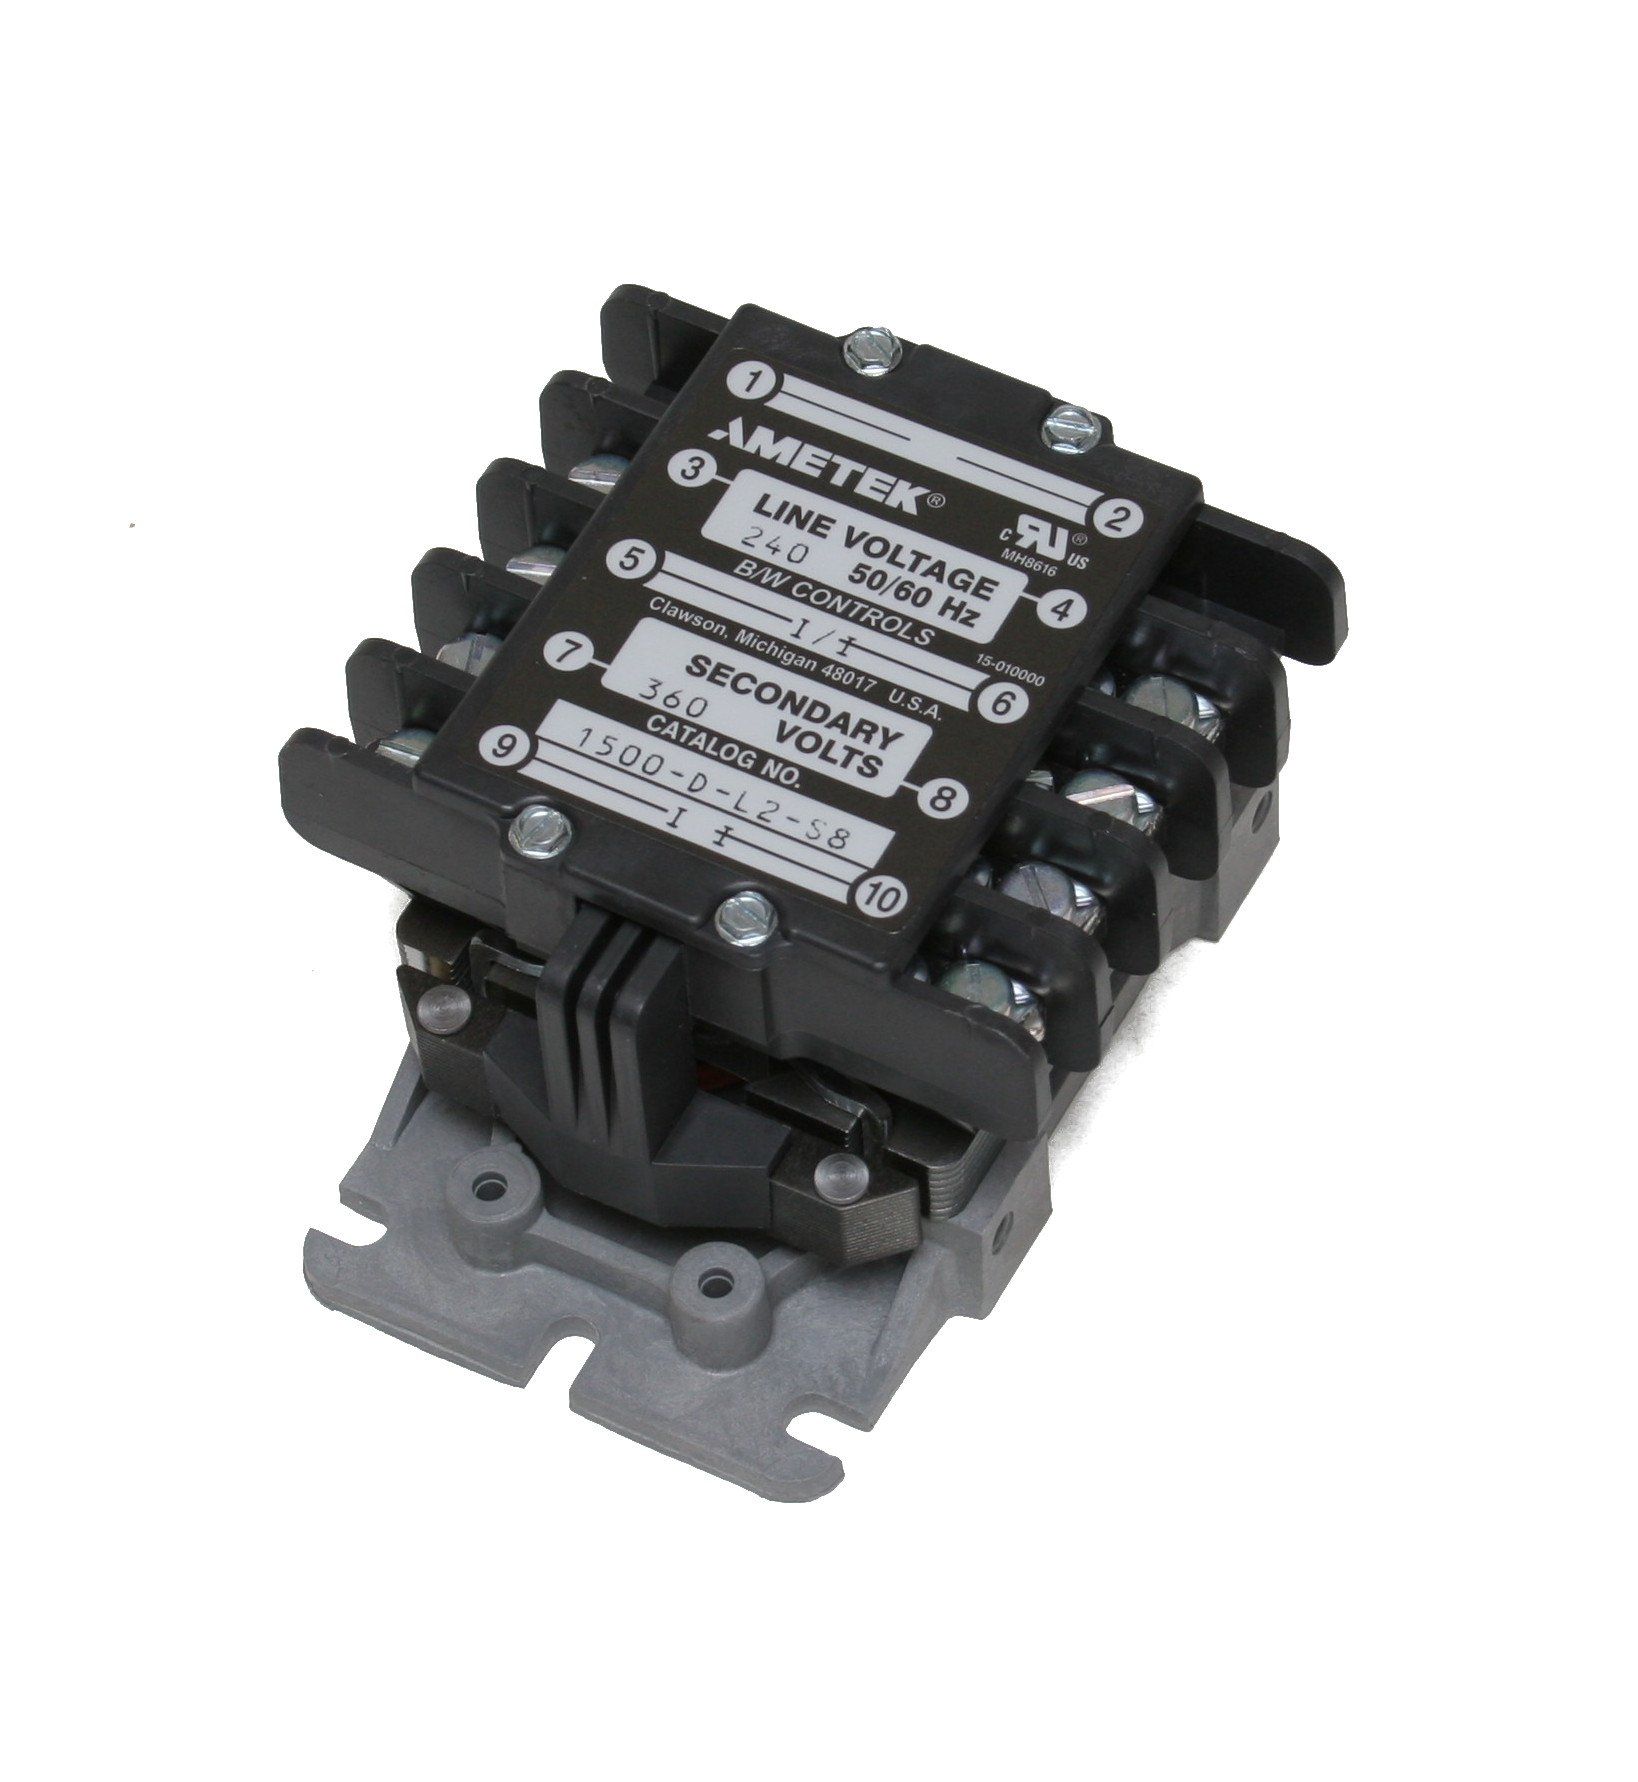 B/W Controls 1500-D-L2-S8 Liquid Level Control Relay